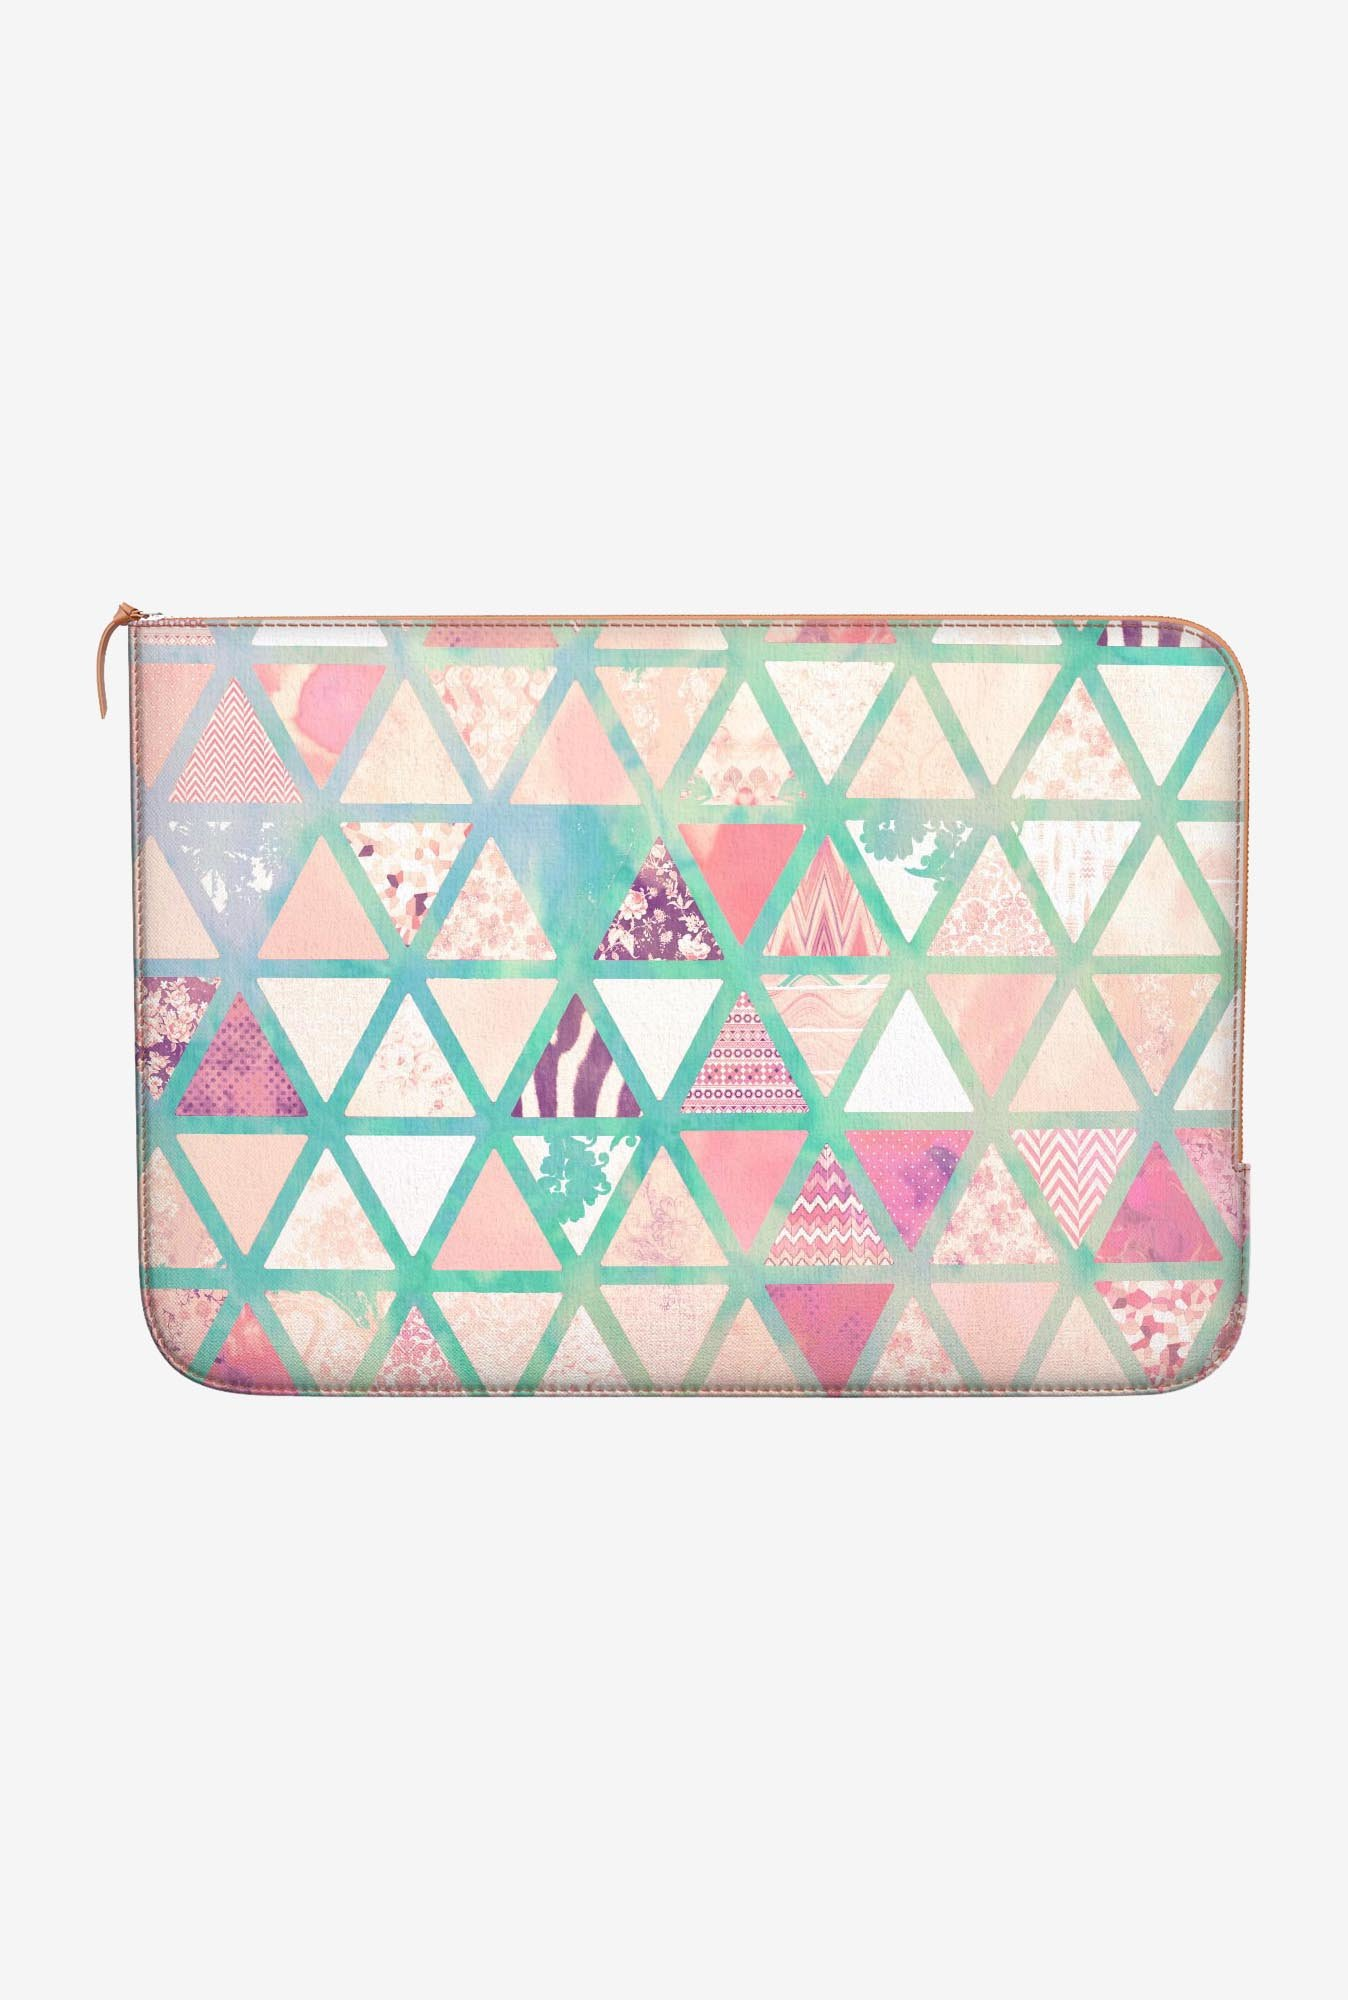 DailyObjects Triangles Patch MacBook 12 Zippered Sleeve